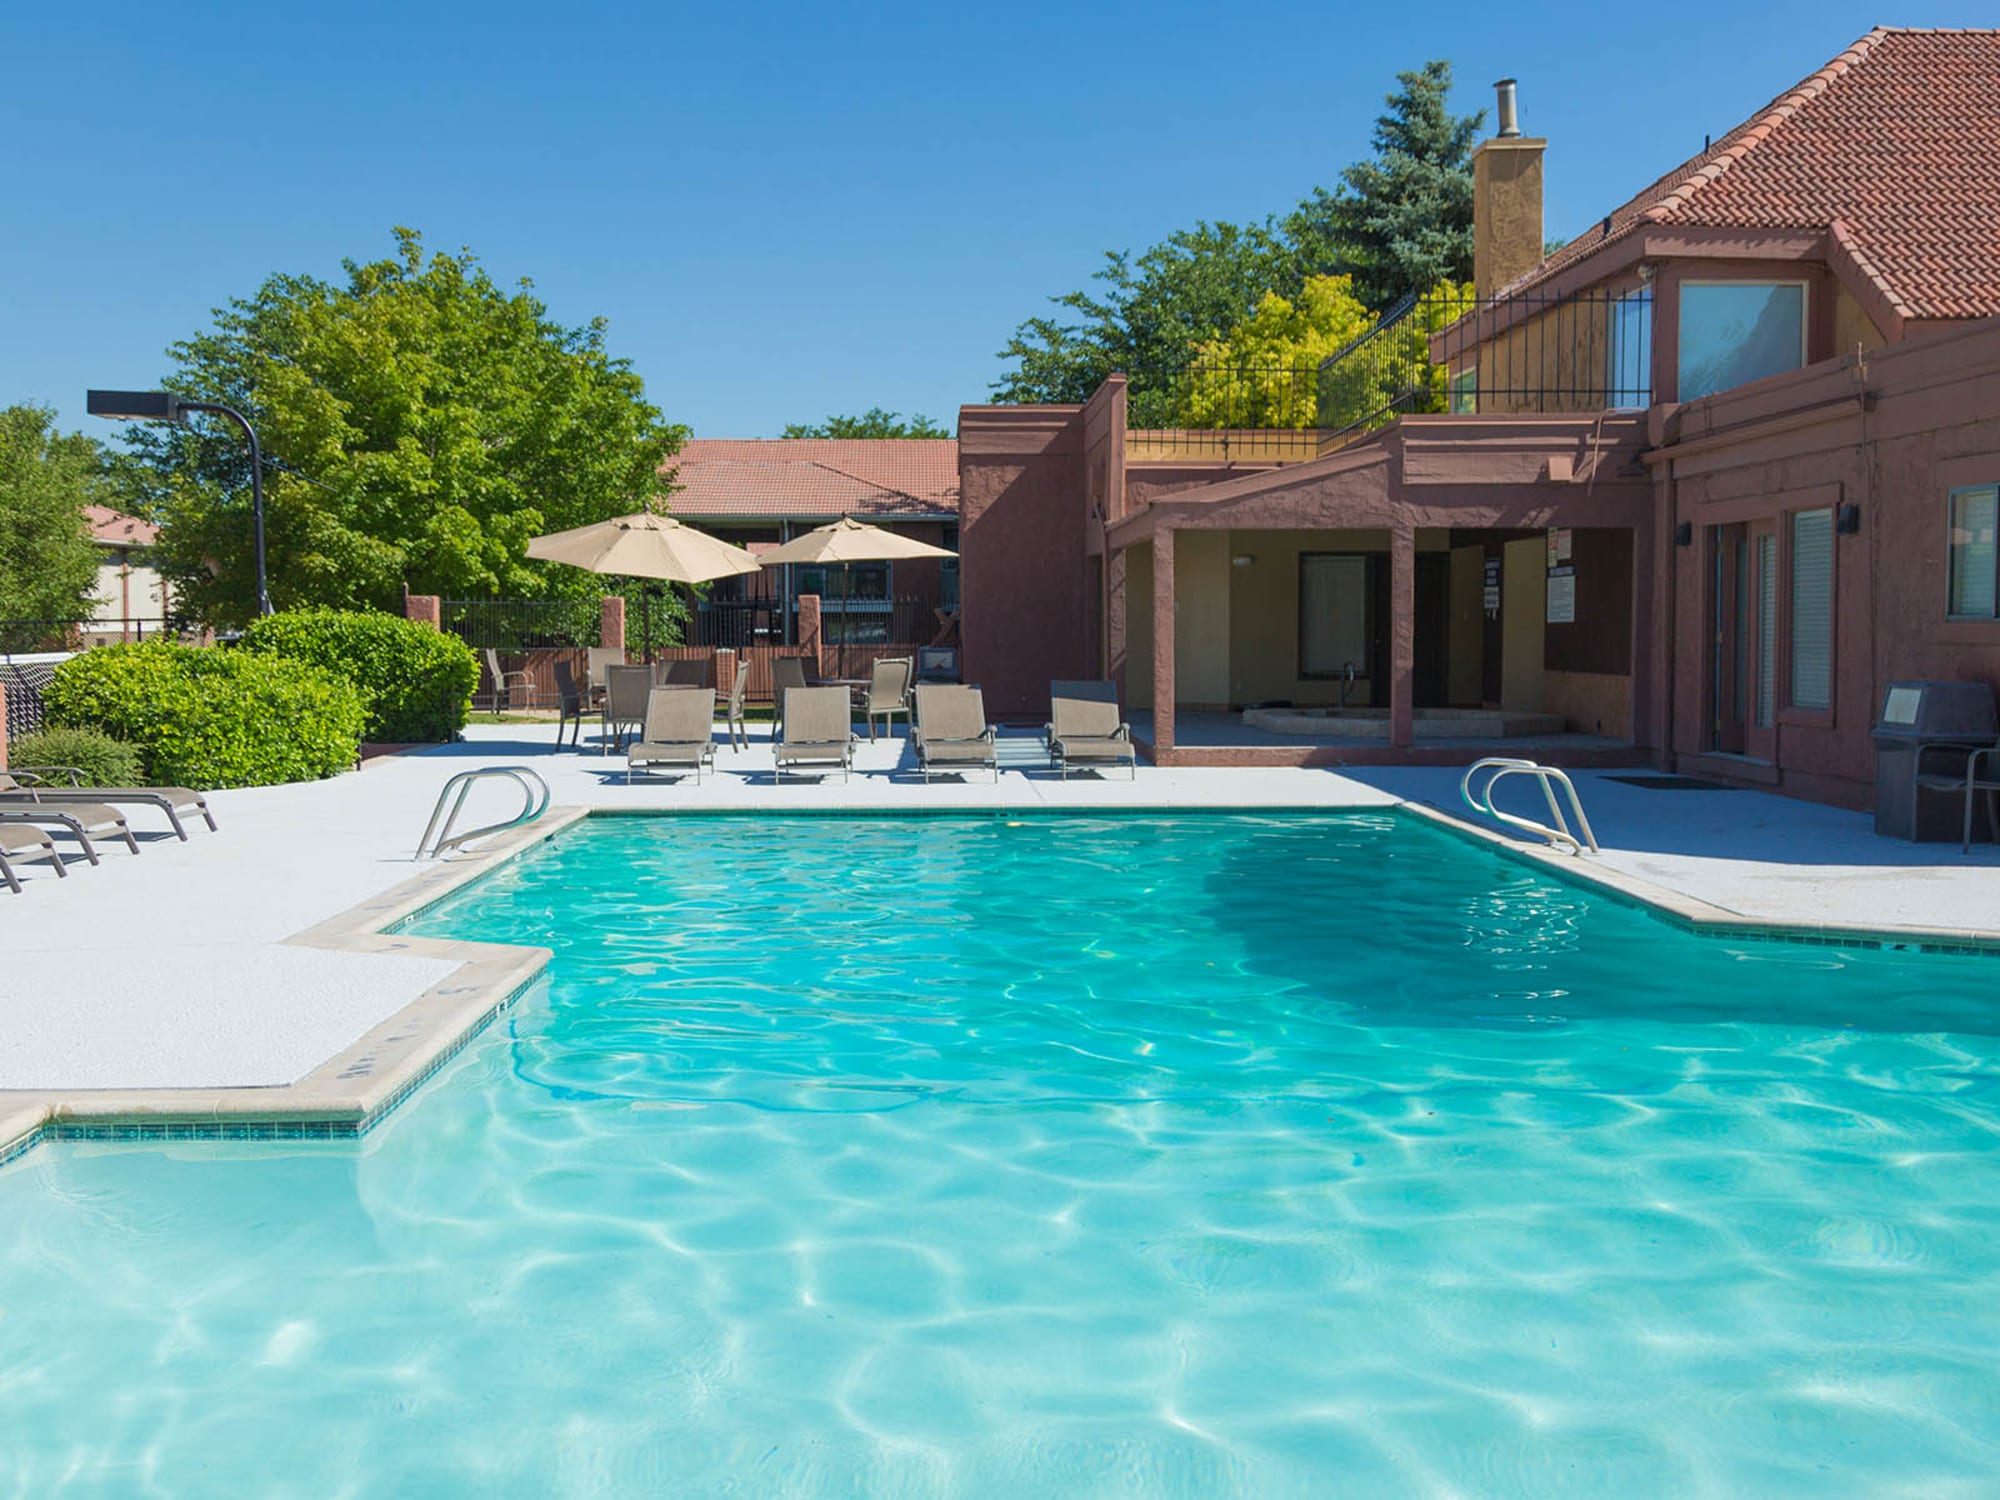 Sparkling Pool and deck with lounge chairs in West Valley City, UT